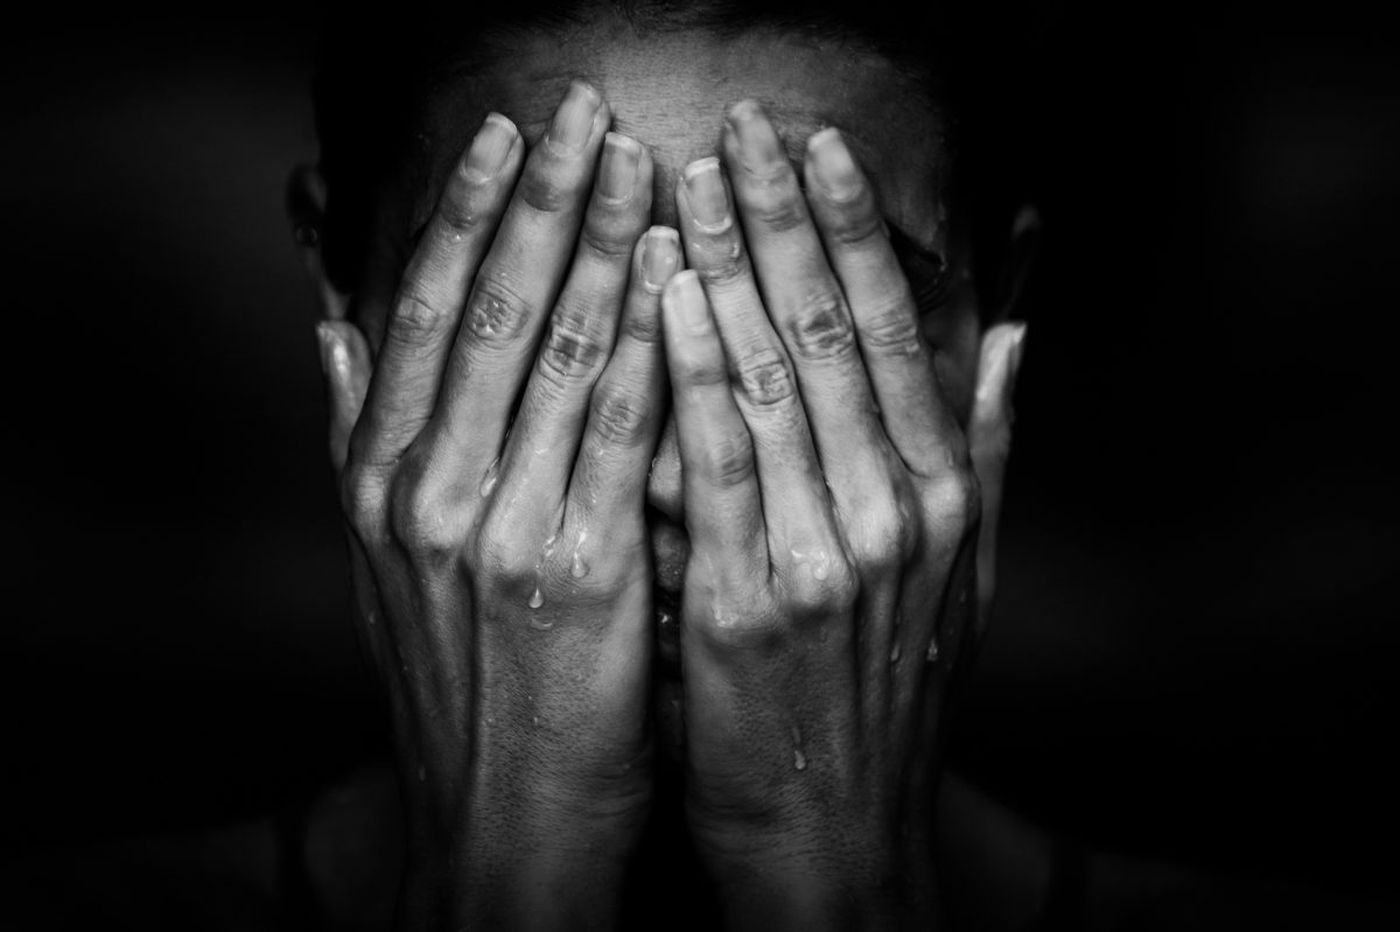 'What happened' vs. 'what's wrong': Recognizing how trauma impacts us all   Perspective